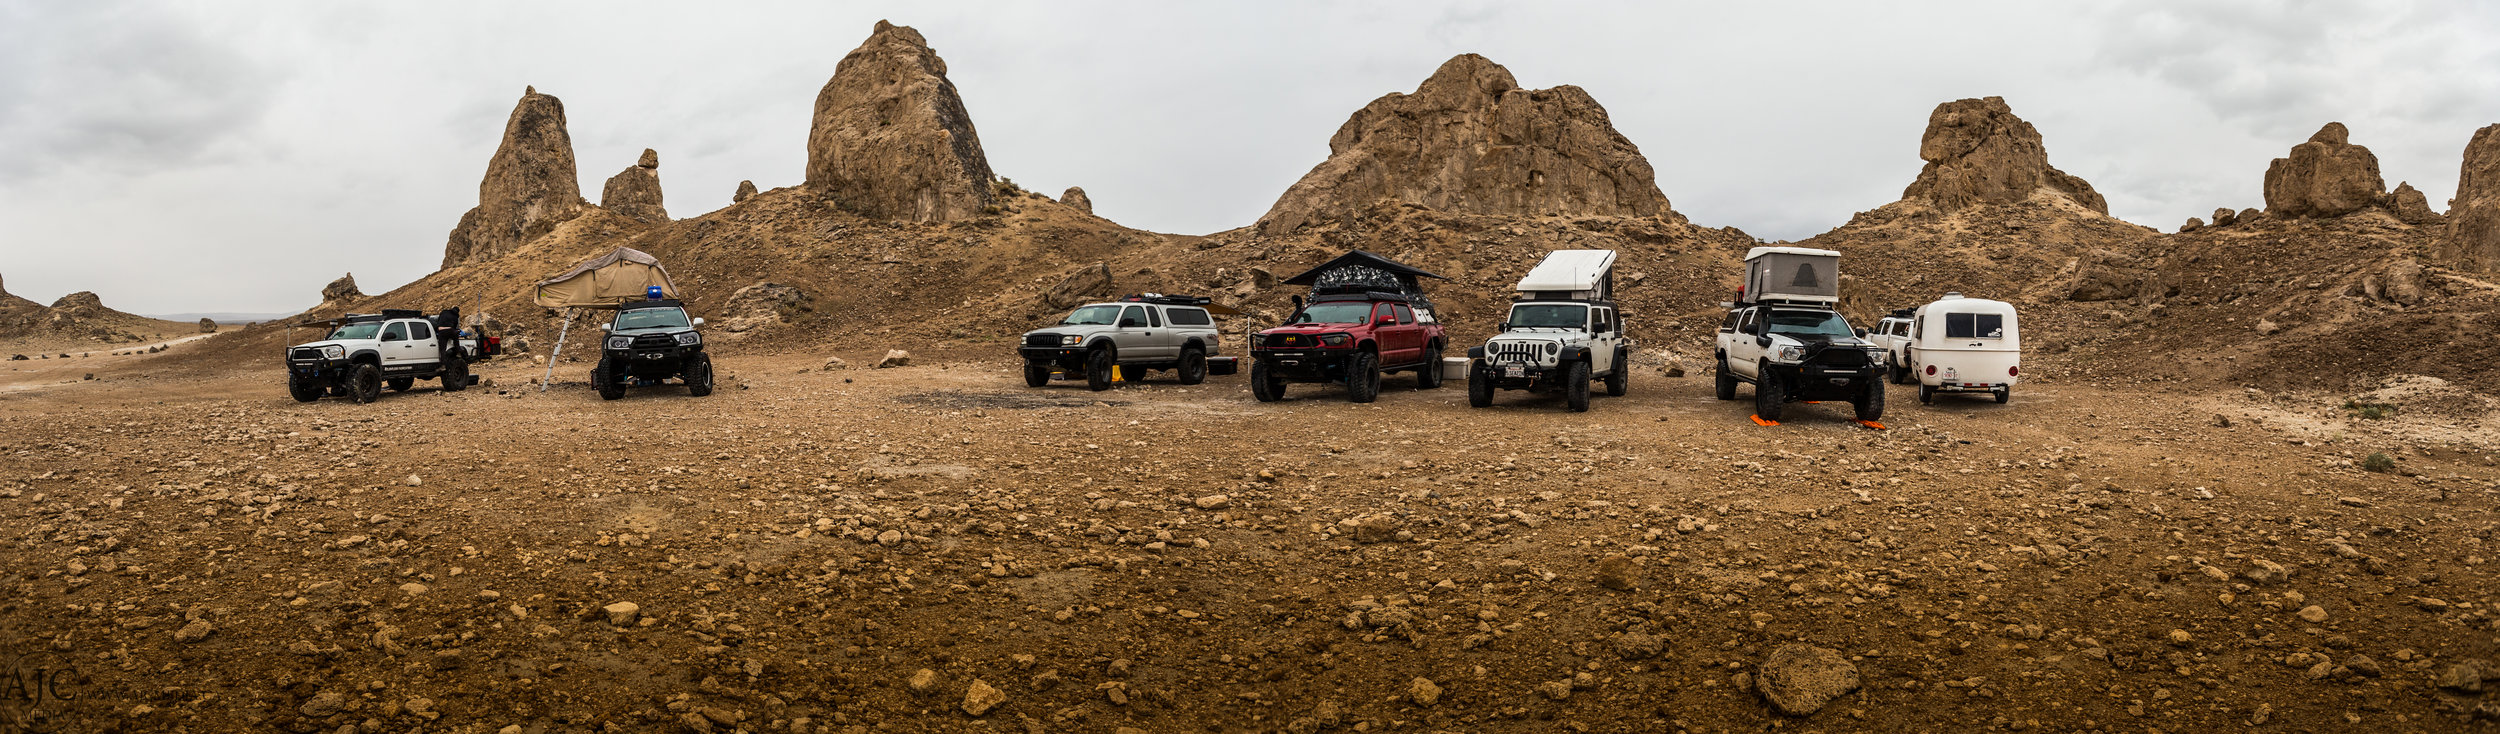 The group grew in size over the night as rigs from all over California descended on Trona Pinnacles for the start of the Death Valley Trip.